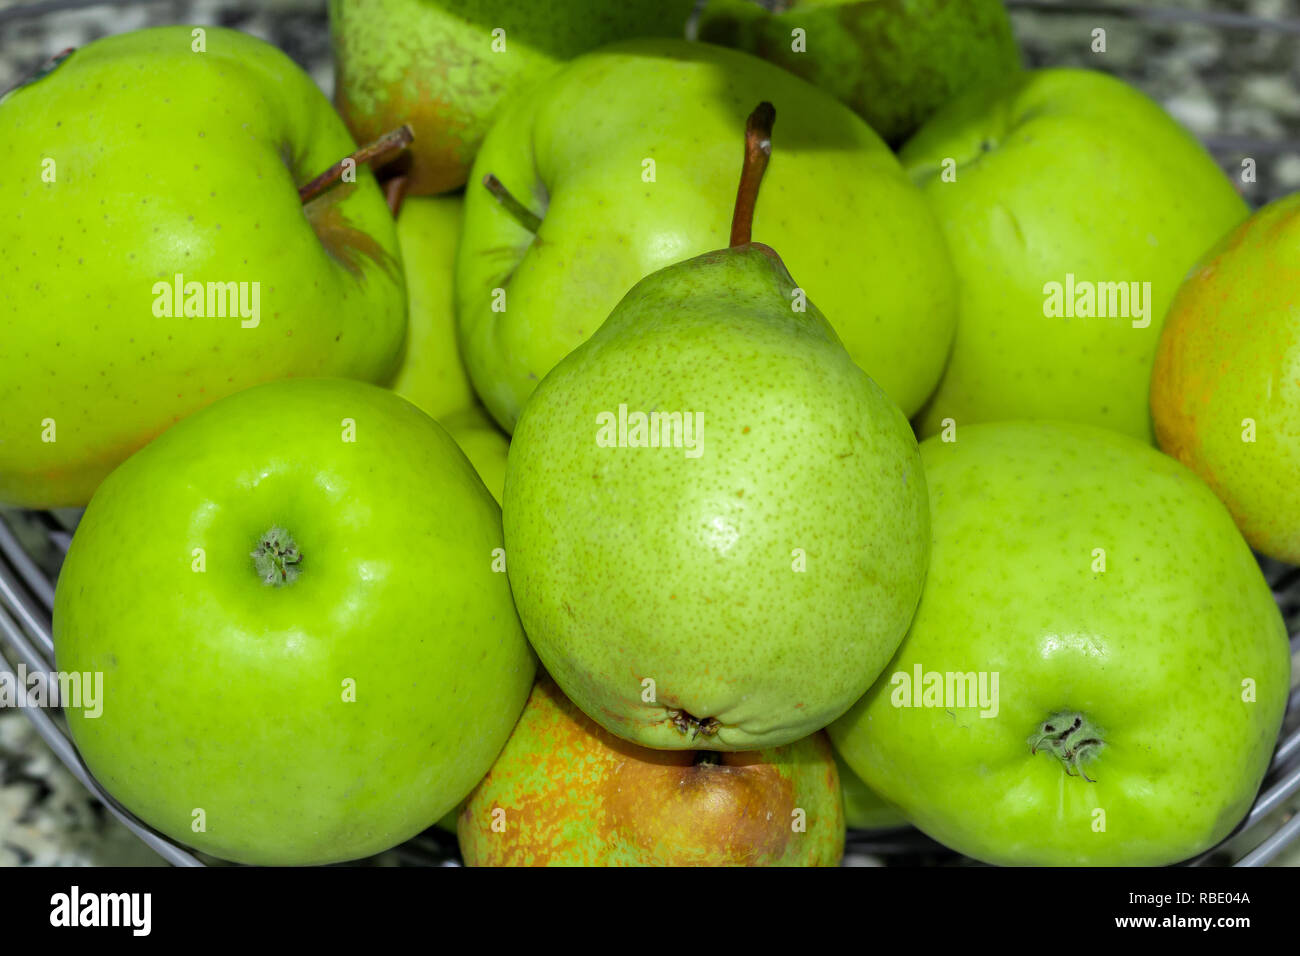 Green pears and apples, healthy and fresh food - Stock Image